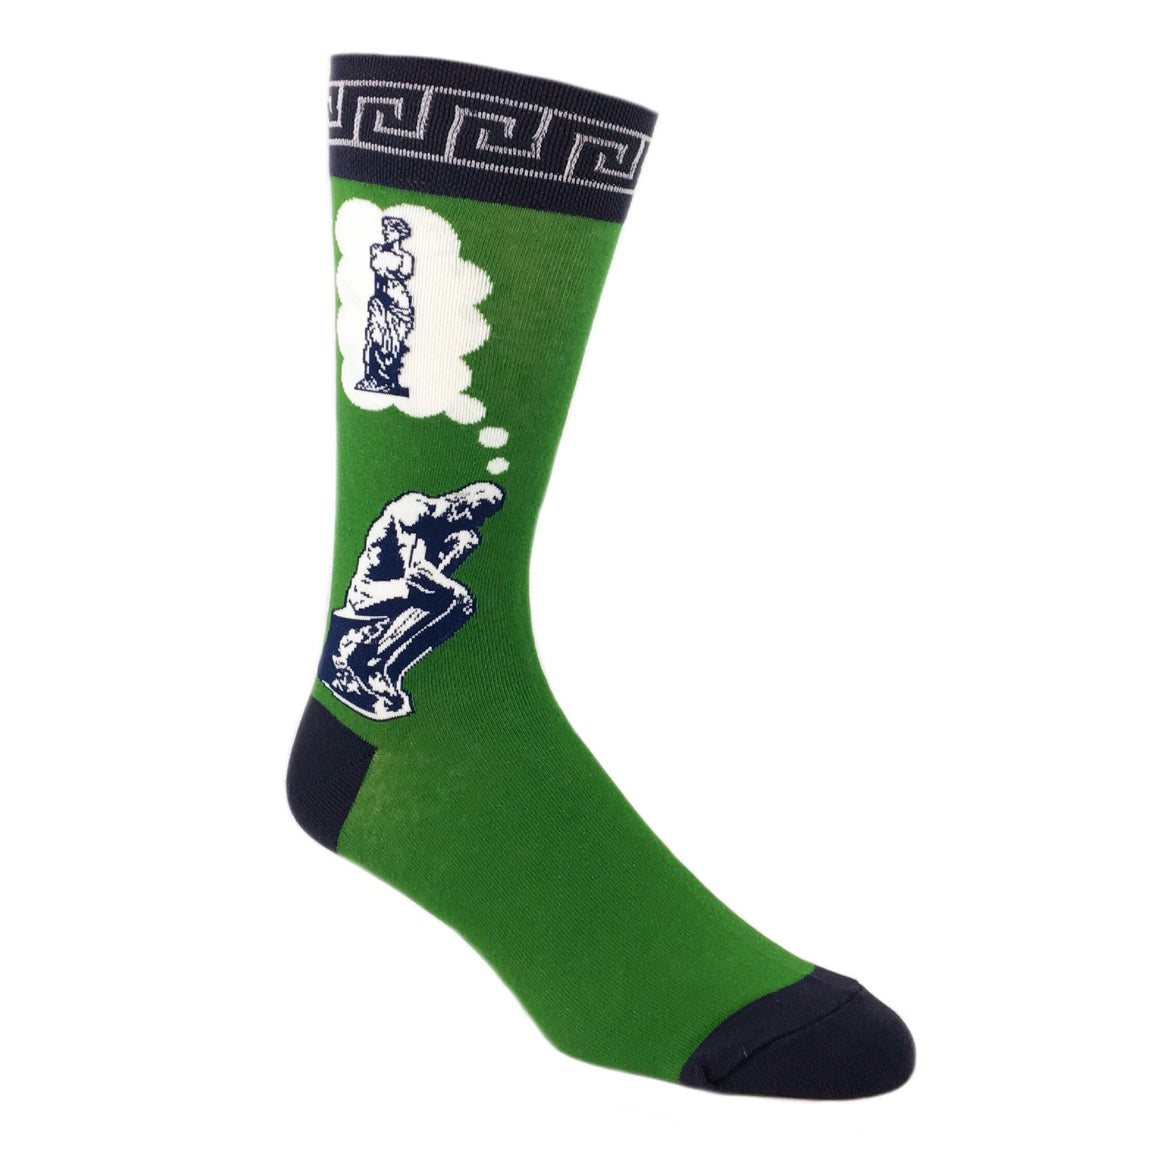 The Thinker's Thought Socks - The Sock Spot